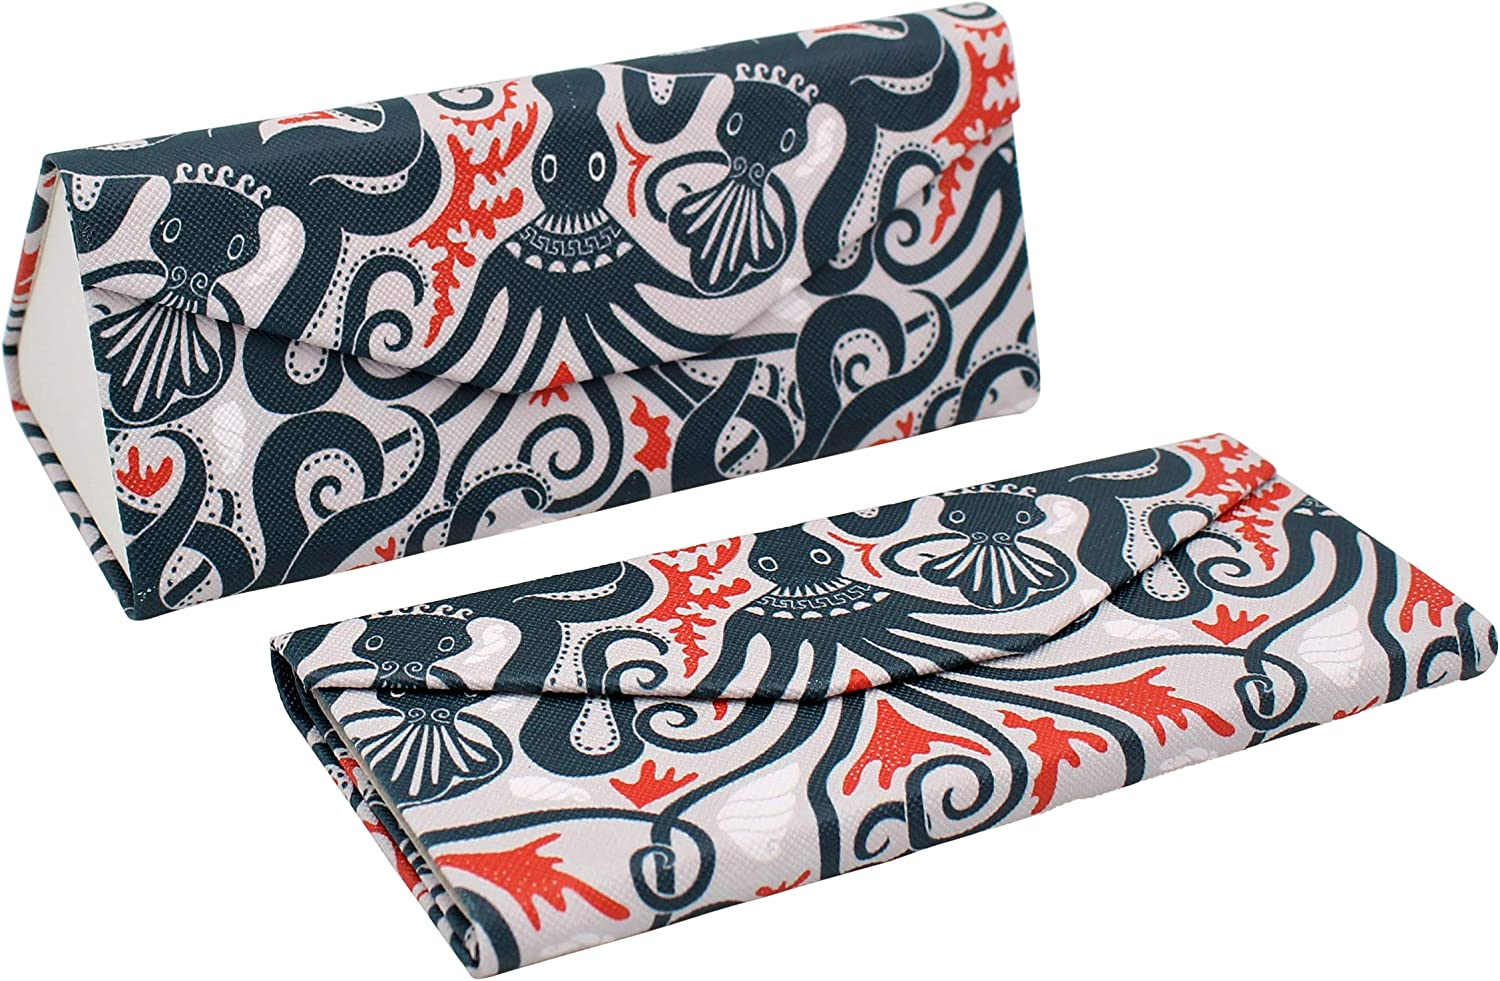 REAL SIC Adorable Animal Glasses Case - Magnetic Folding Eco Leather Feel Hard Case for All Glasses